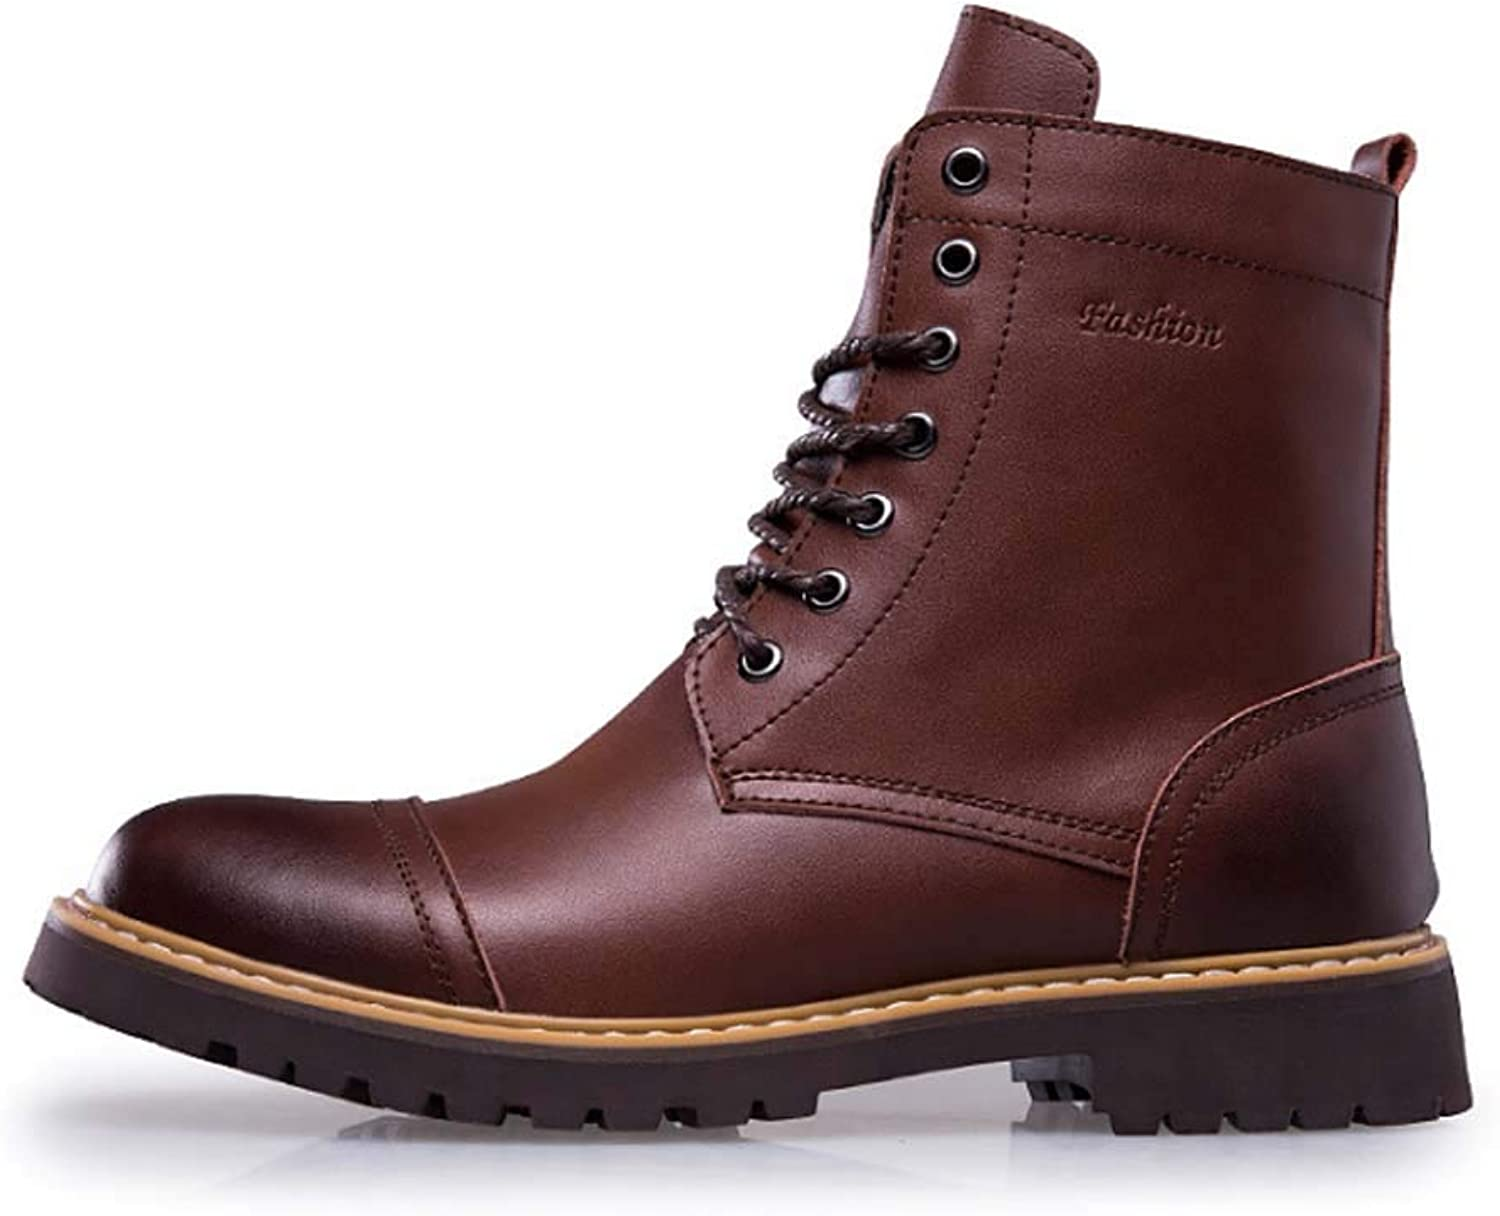 HYLFF Men Boots Leather Ankle Waterproof Casual Winter,Martin Ankle Boot Walking Work Elegant Oxford Wide Fit Dr Martin Comfortable,Brown,42EU